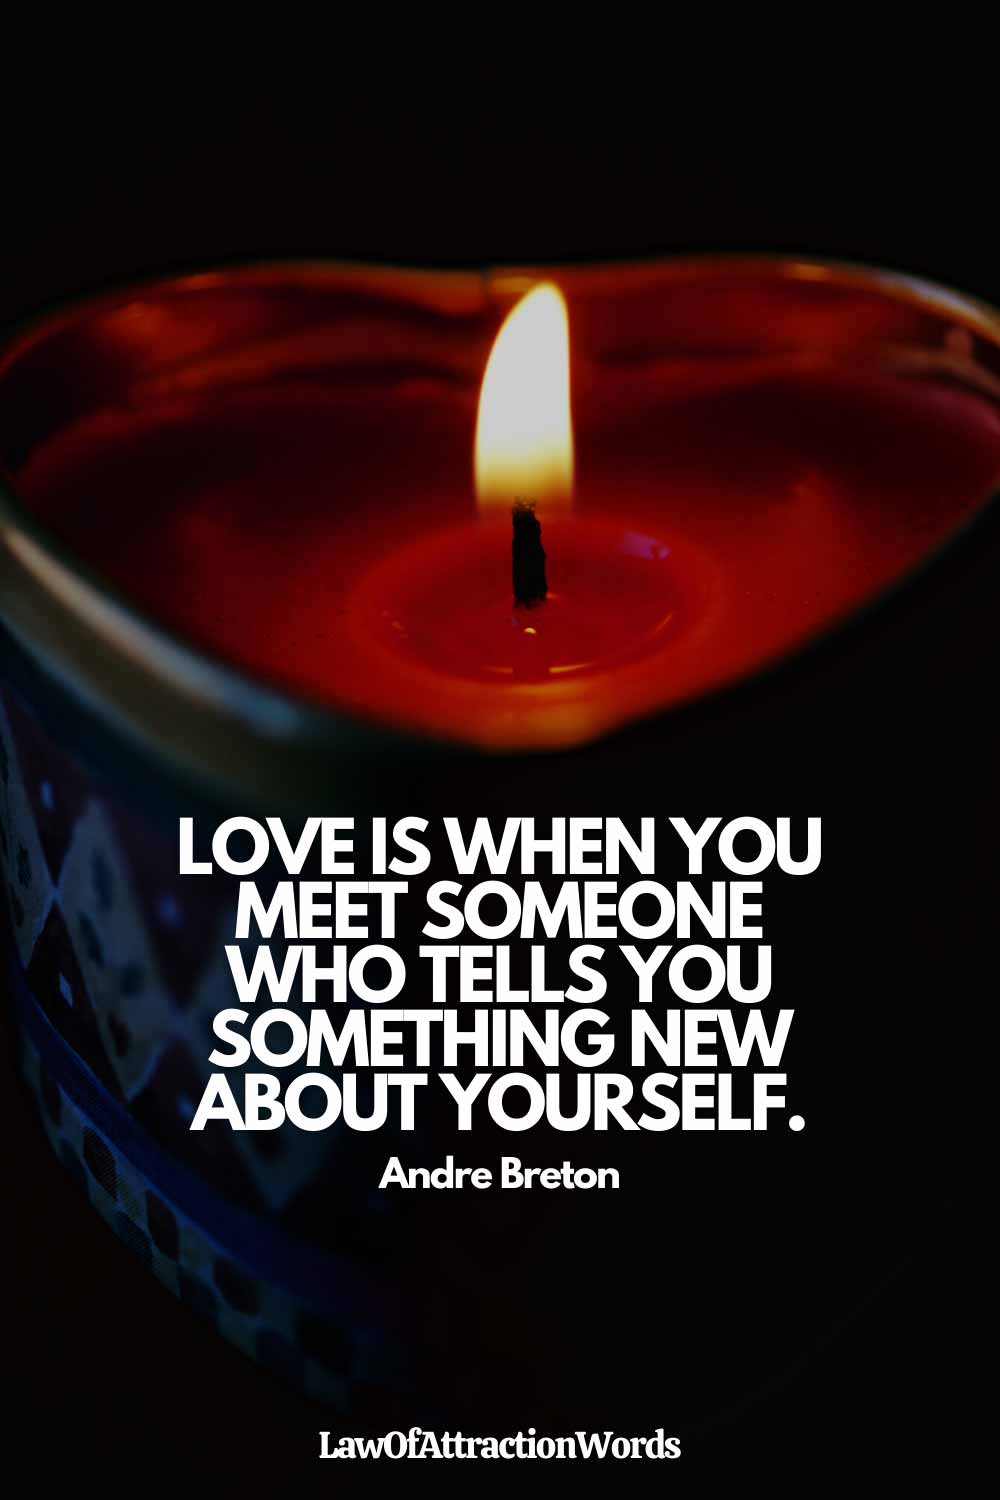 Law Of Attraction Quotes About Love Yourself